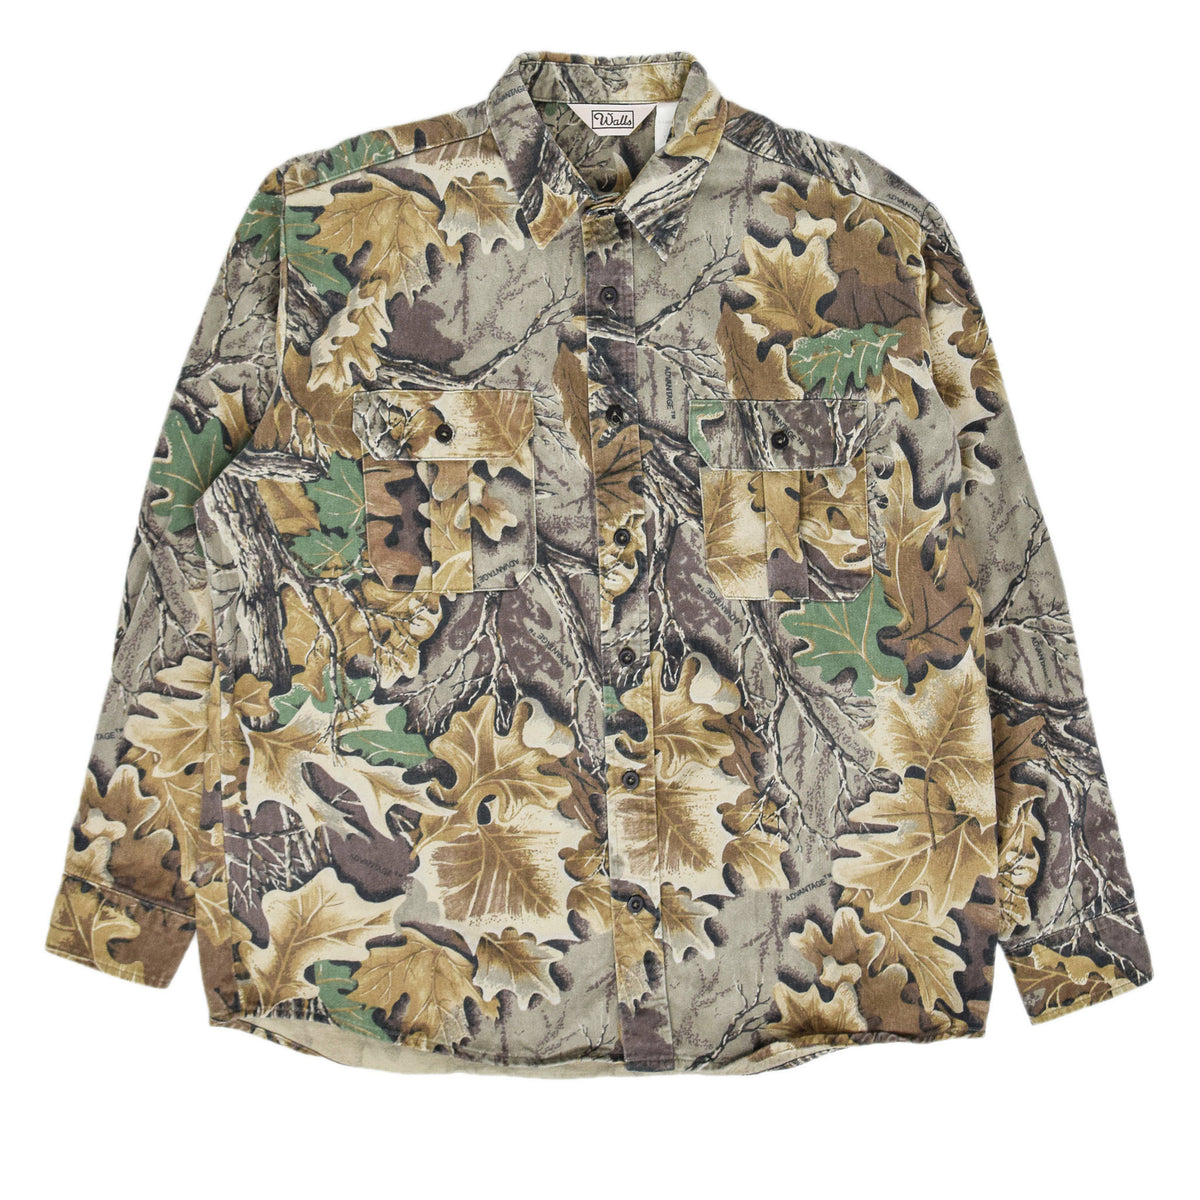 Vintage Wall's Leaf Camouflage Hunting Shooting Cotton Long Sleeve Shirt XL front